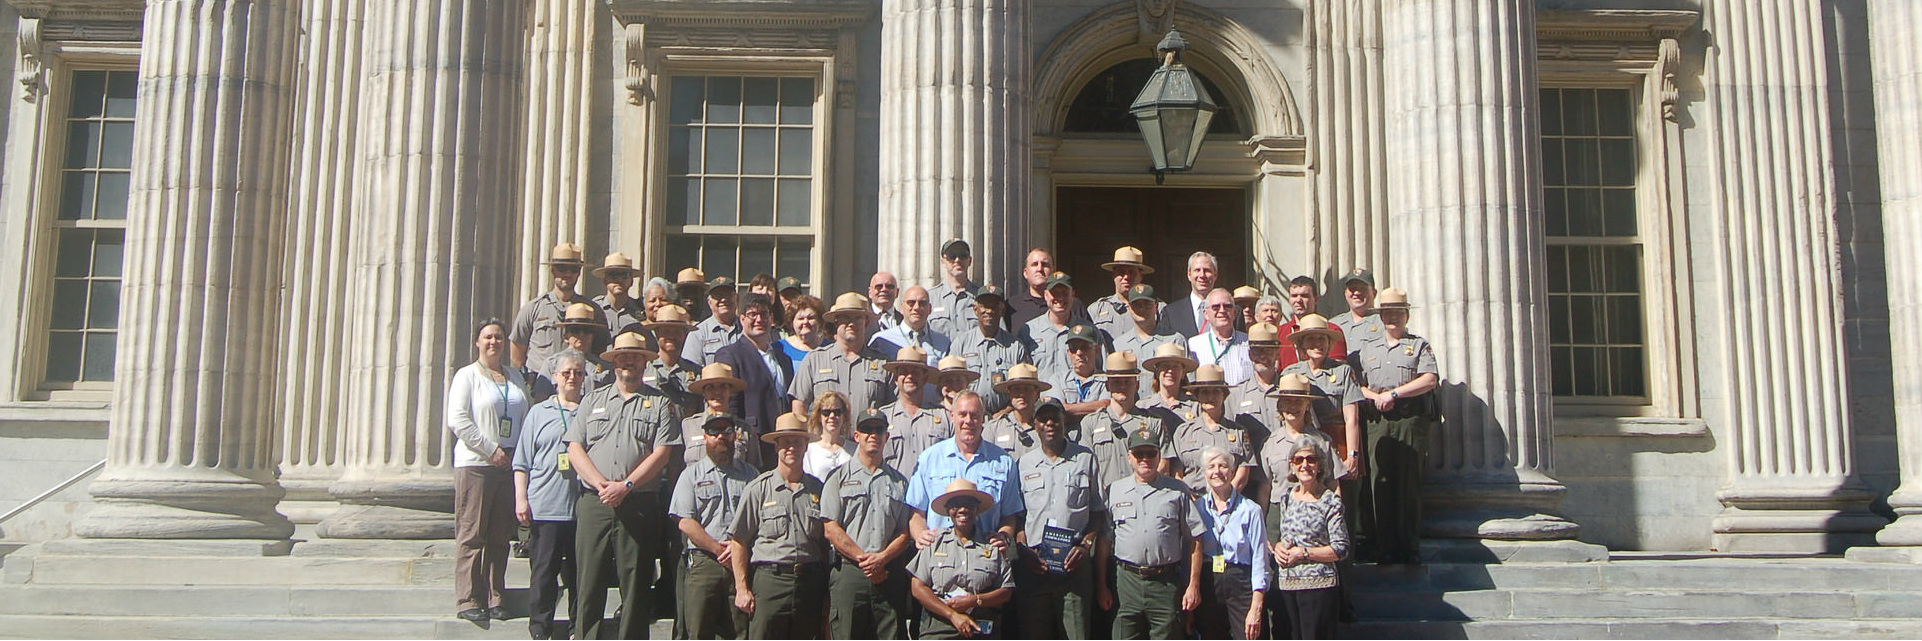 Secretary Zinke poses with a group of about 50 park service employees in uniforms on the steps of an ornate old building.